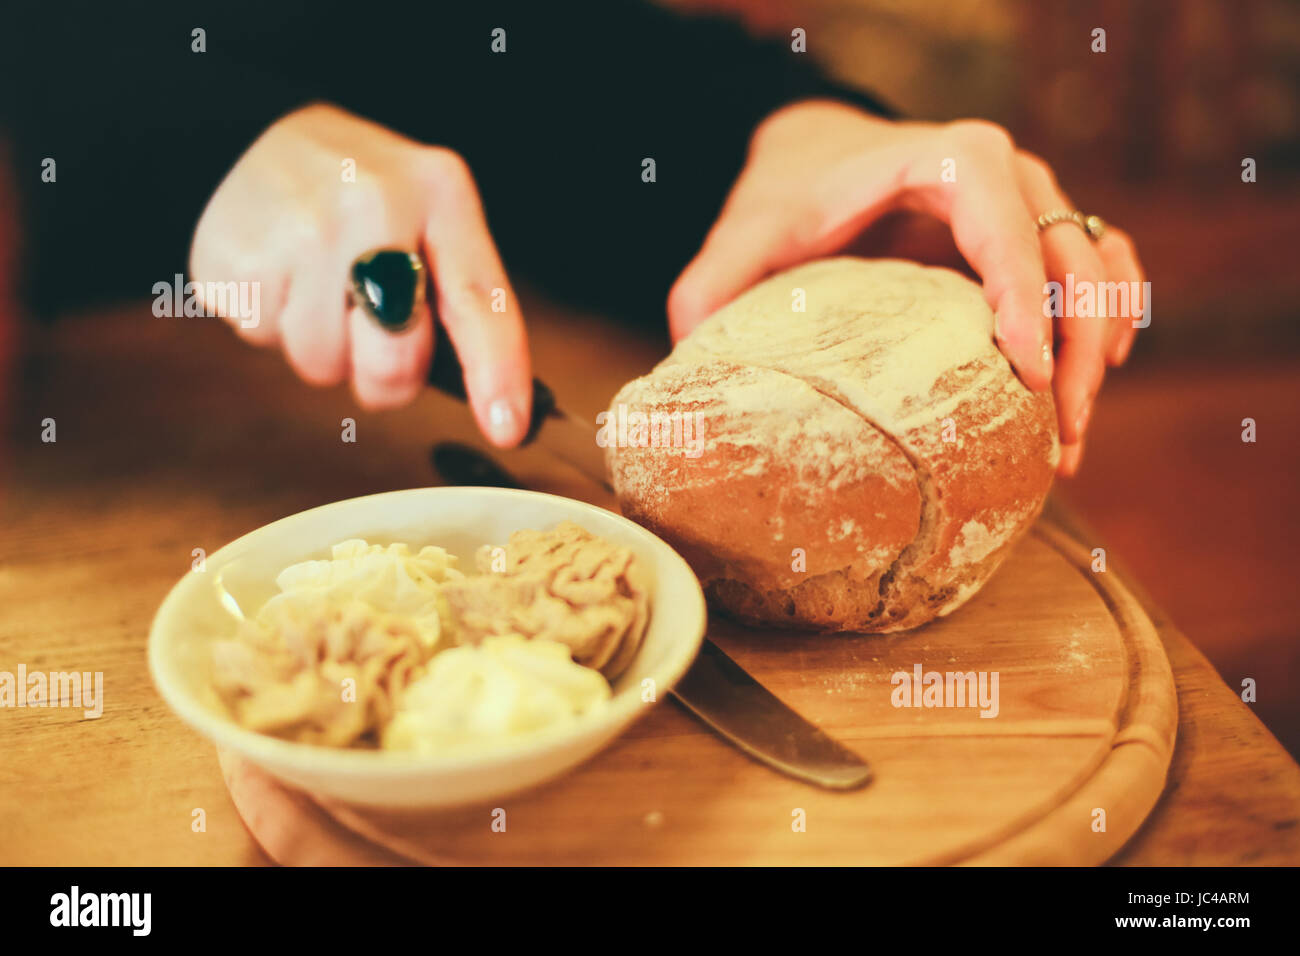 Close up shot of woman cutting home made bread on a wooden board, selection of butters and pate in a bowl next to - Stock Image